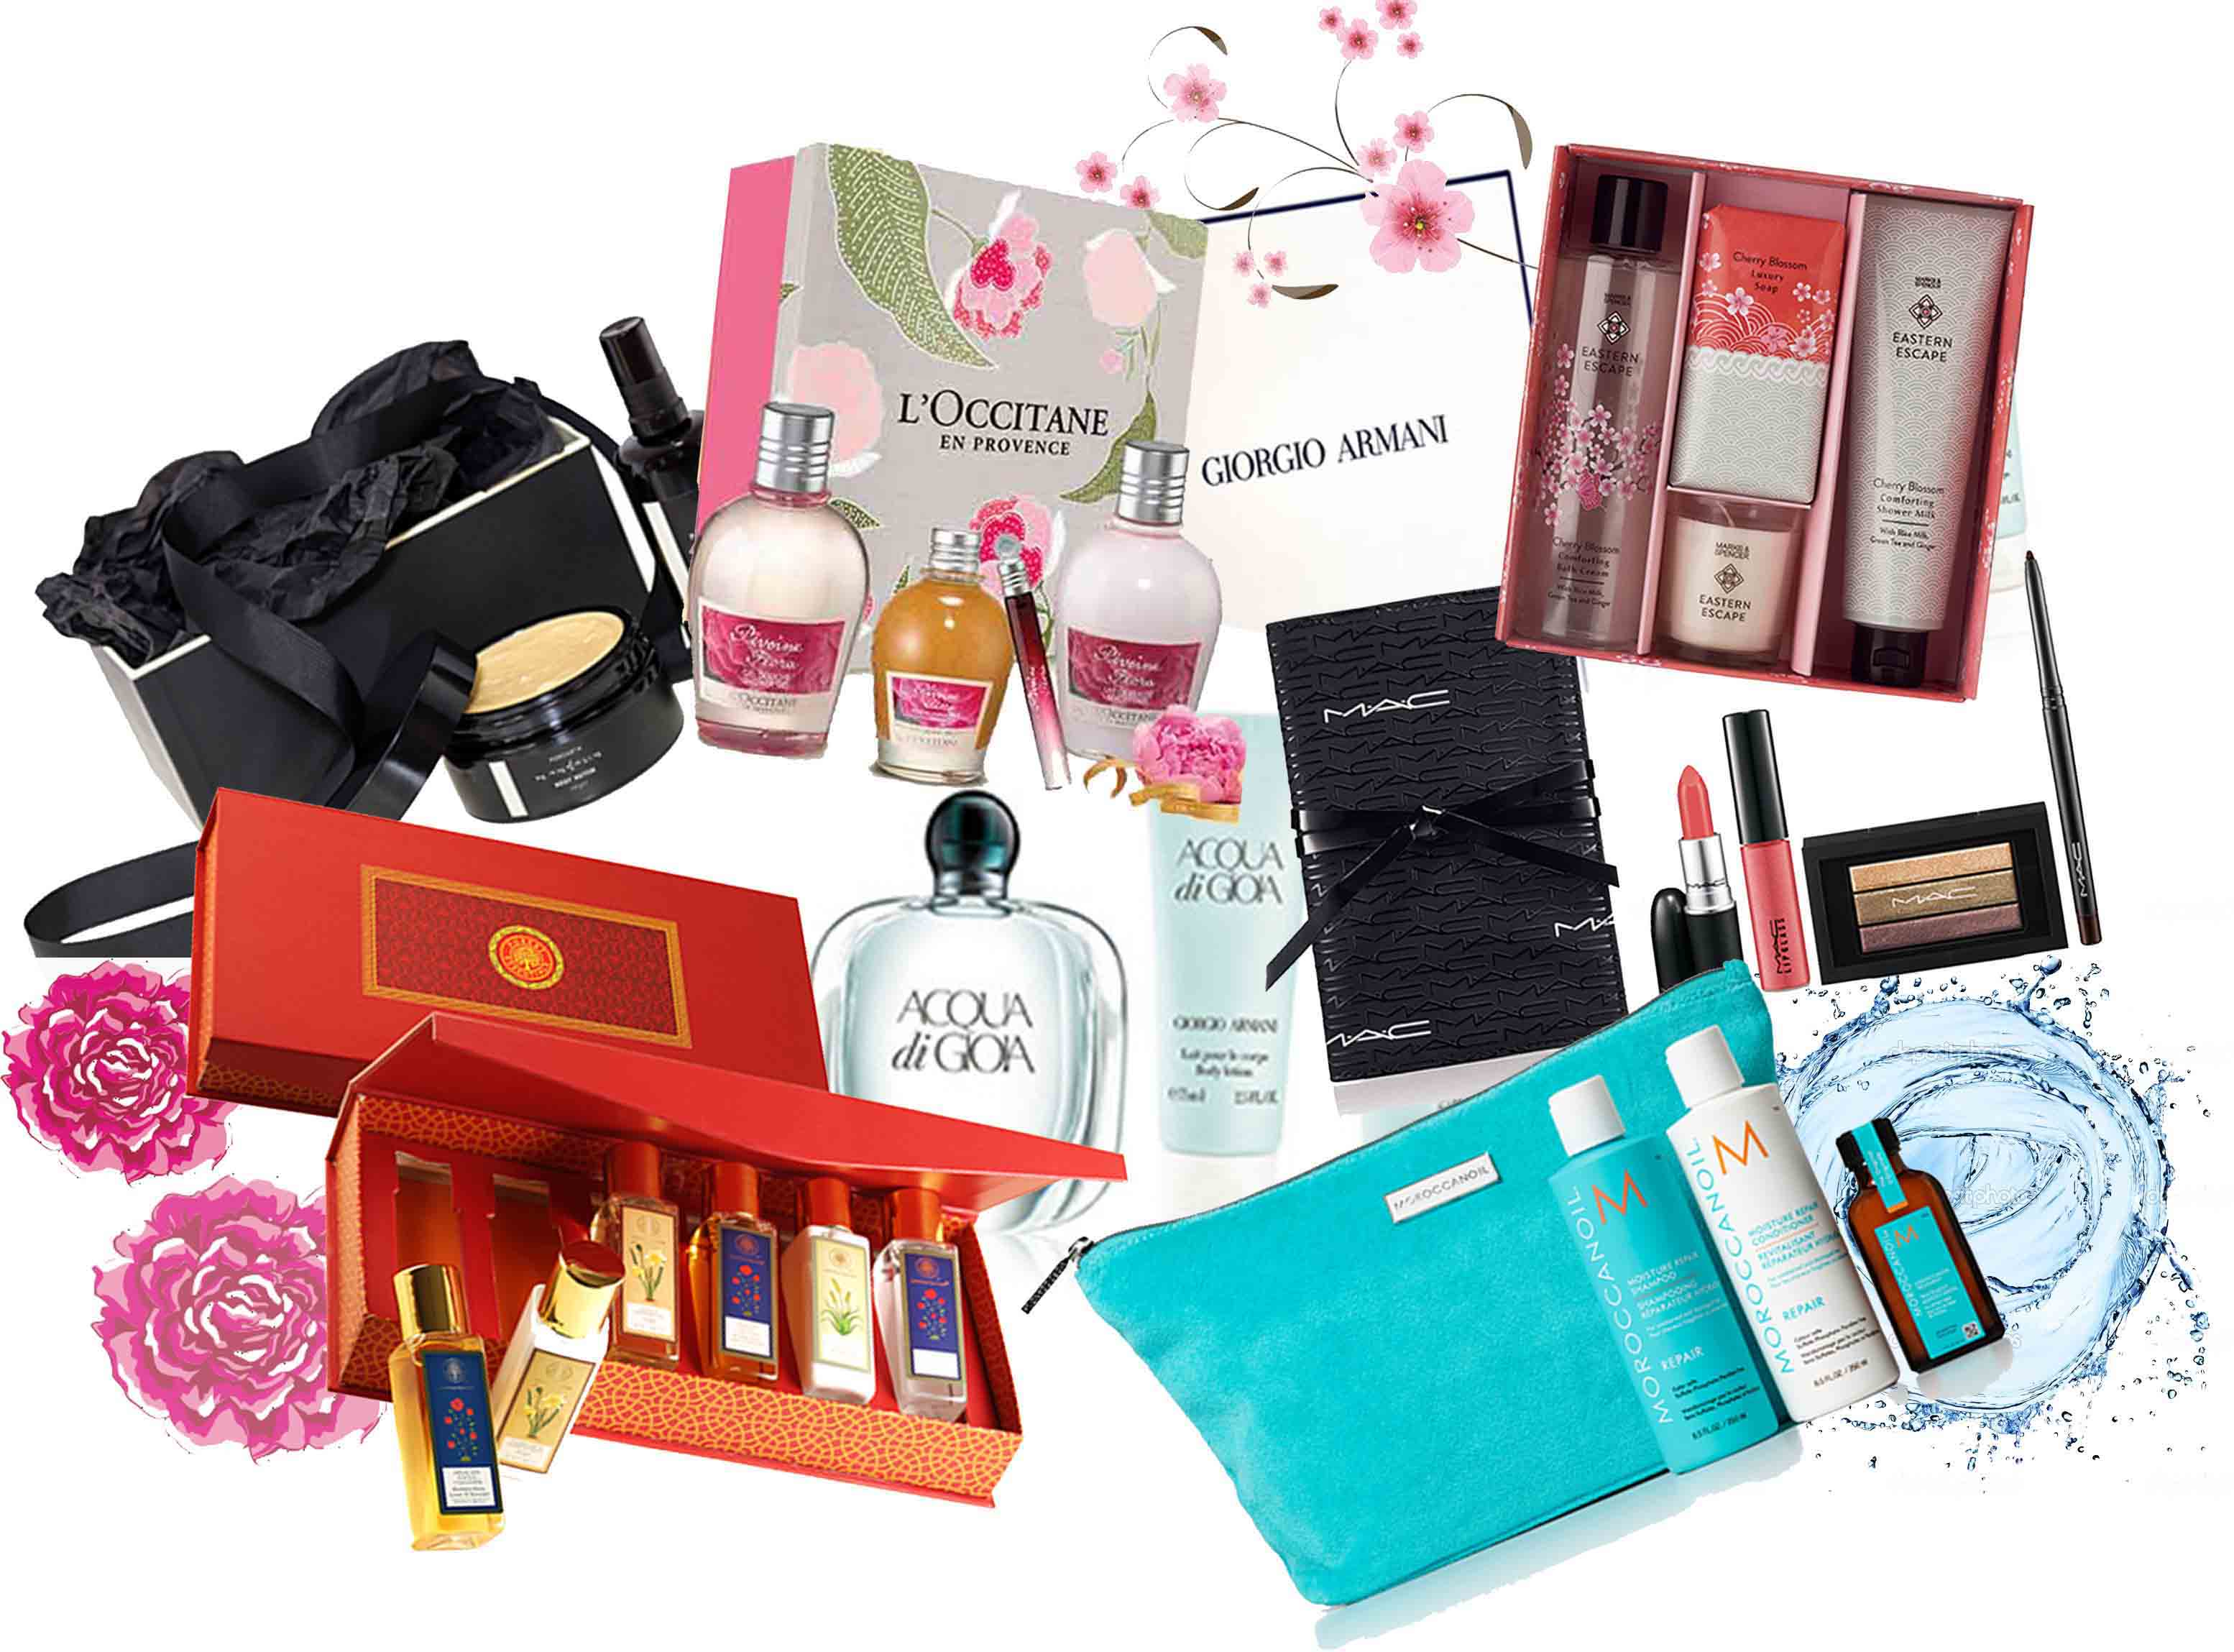 beauty festive hampers loccitane mac forest essentials giorgio armani diwali moroccanoil marks and spencer